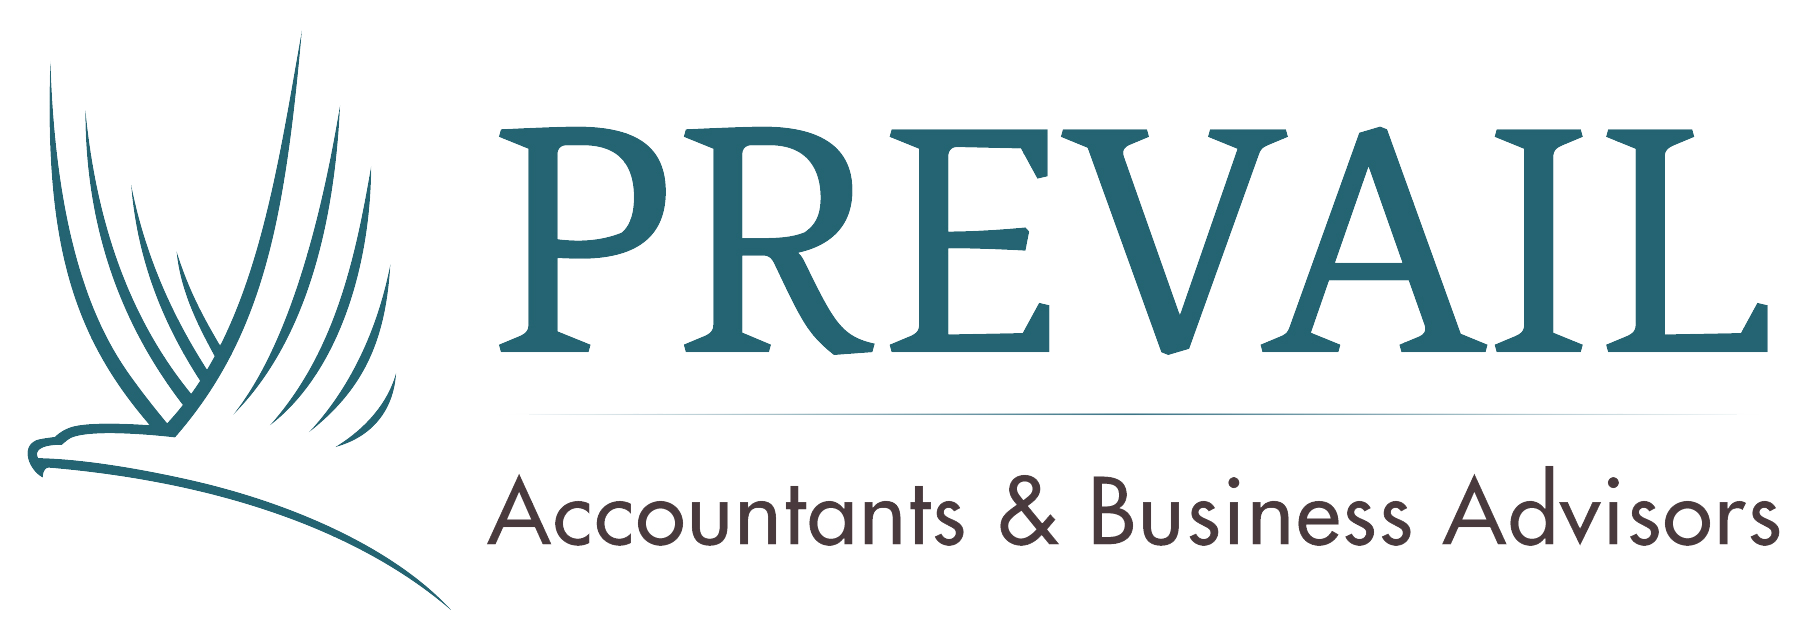 Prevail_Logo_BusinessAdvisors_LARGE